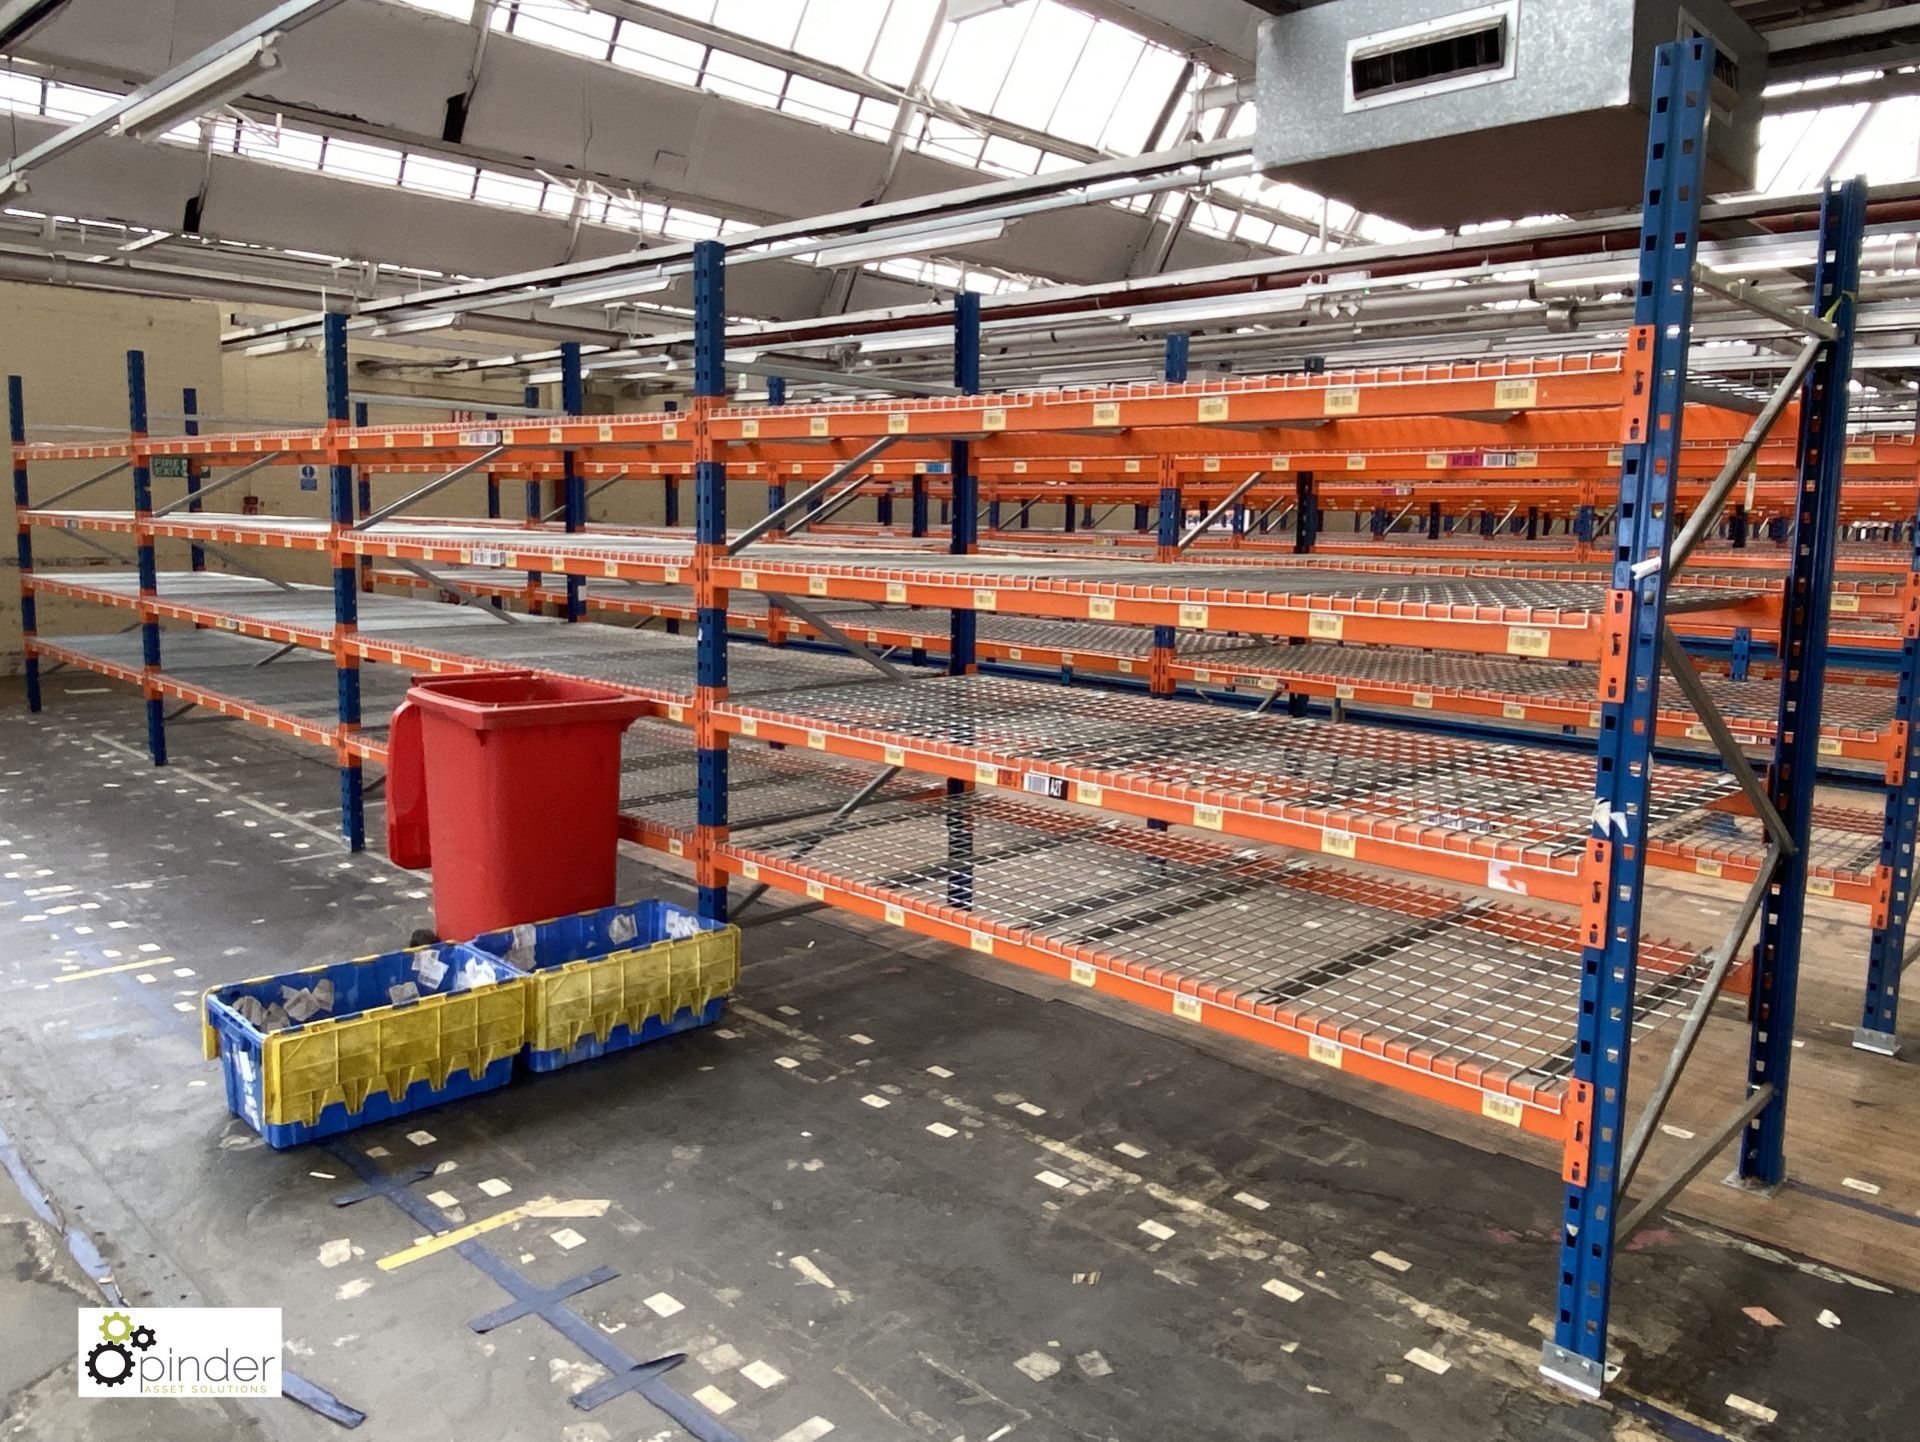 4 bays PSS 2K85 16 boltless Stock Racking, comprising 5 uprights 2400mm x 1200mm, 32 beams 2700mm,